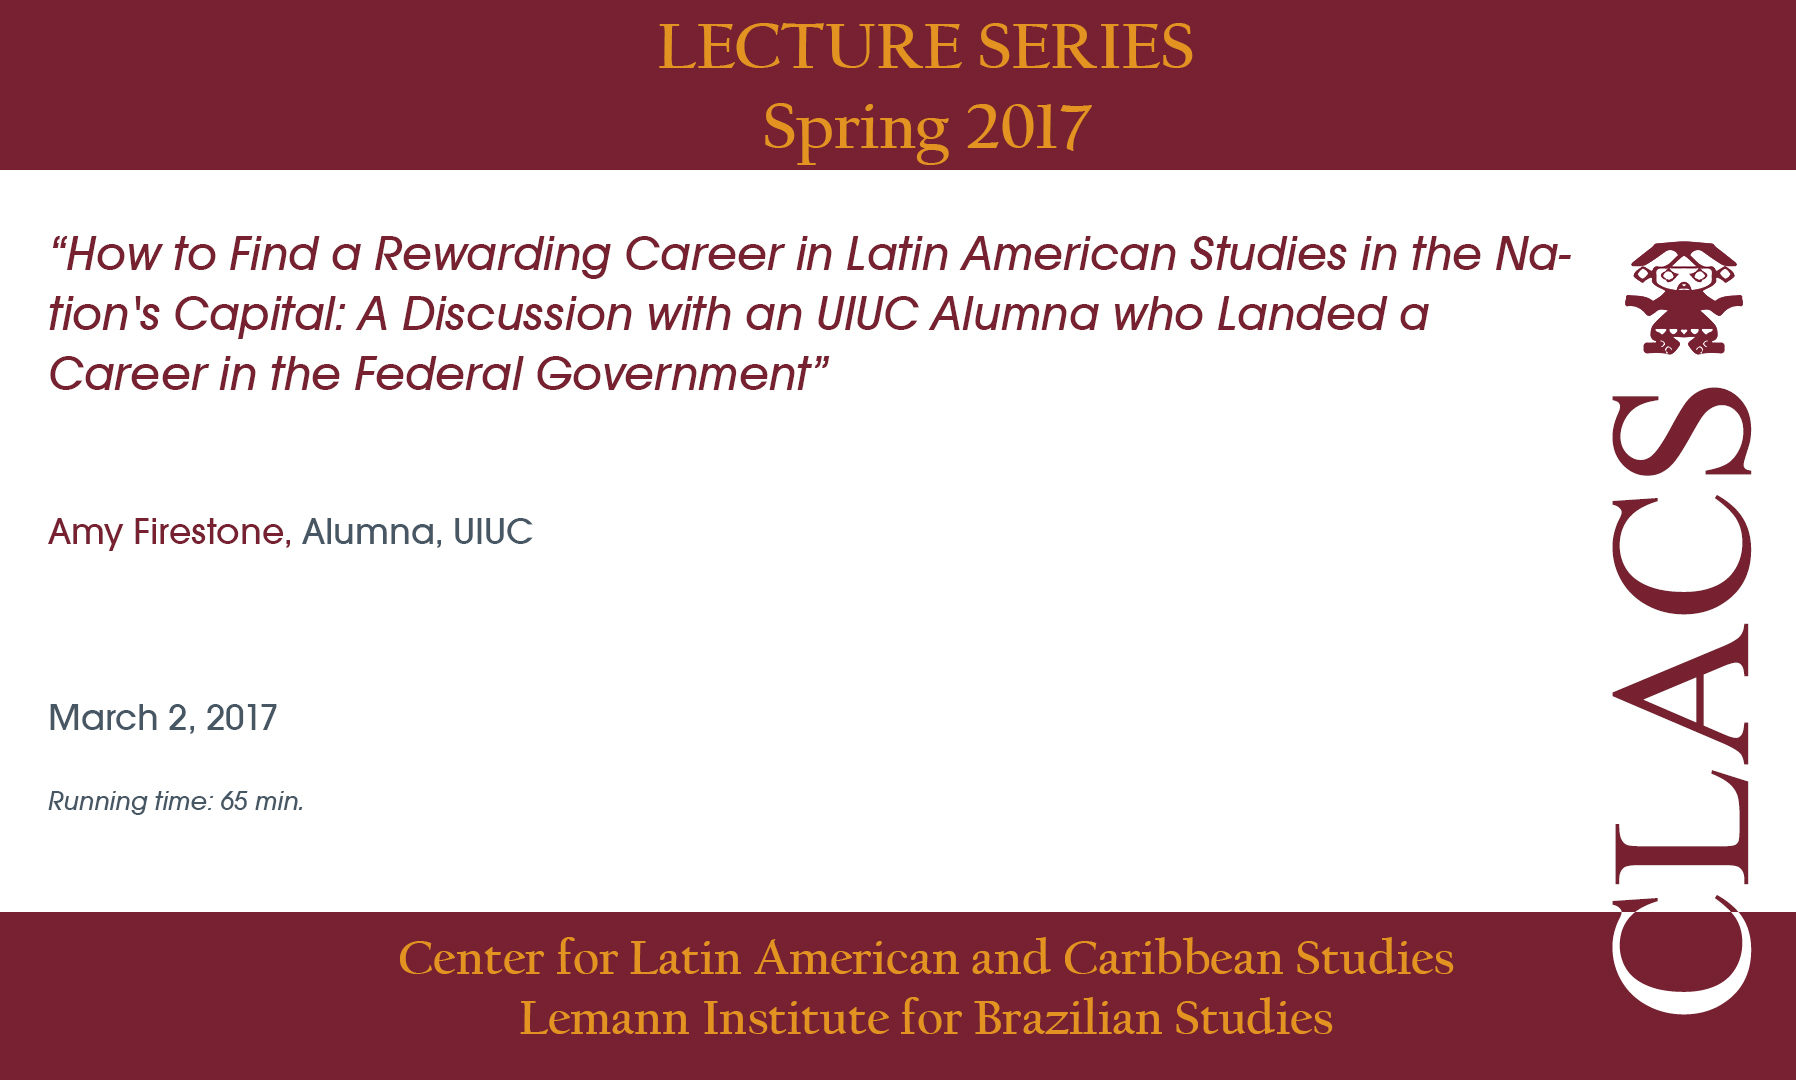 How to Find a Rewarding Career in Latin American Studies in the Nation's Capital: A Discussion with an UIUC Alumna who Landed a Career in the Federal Government